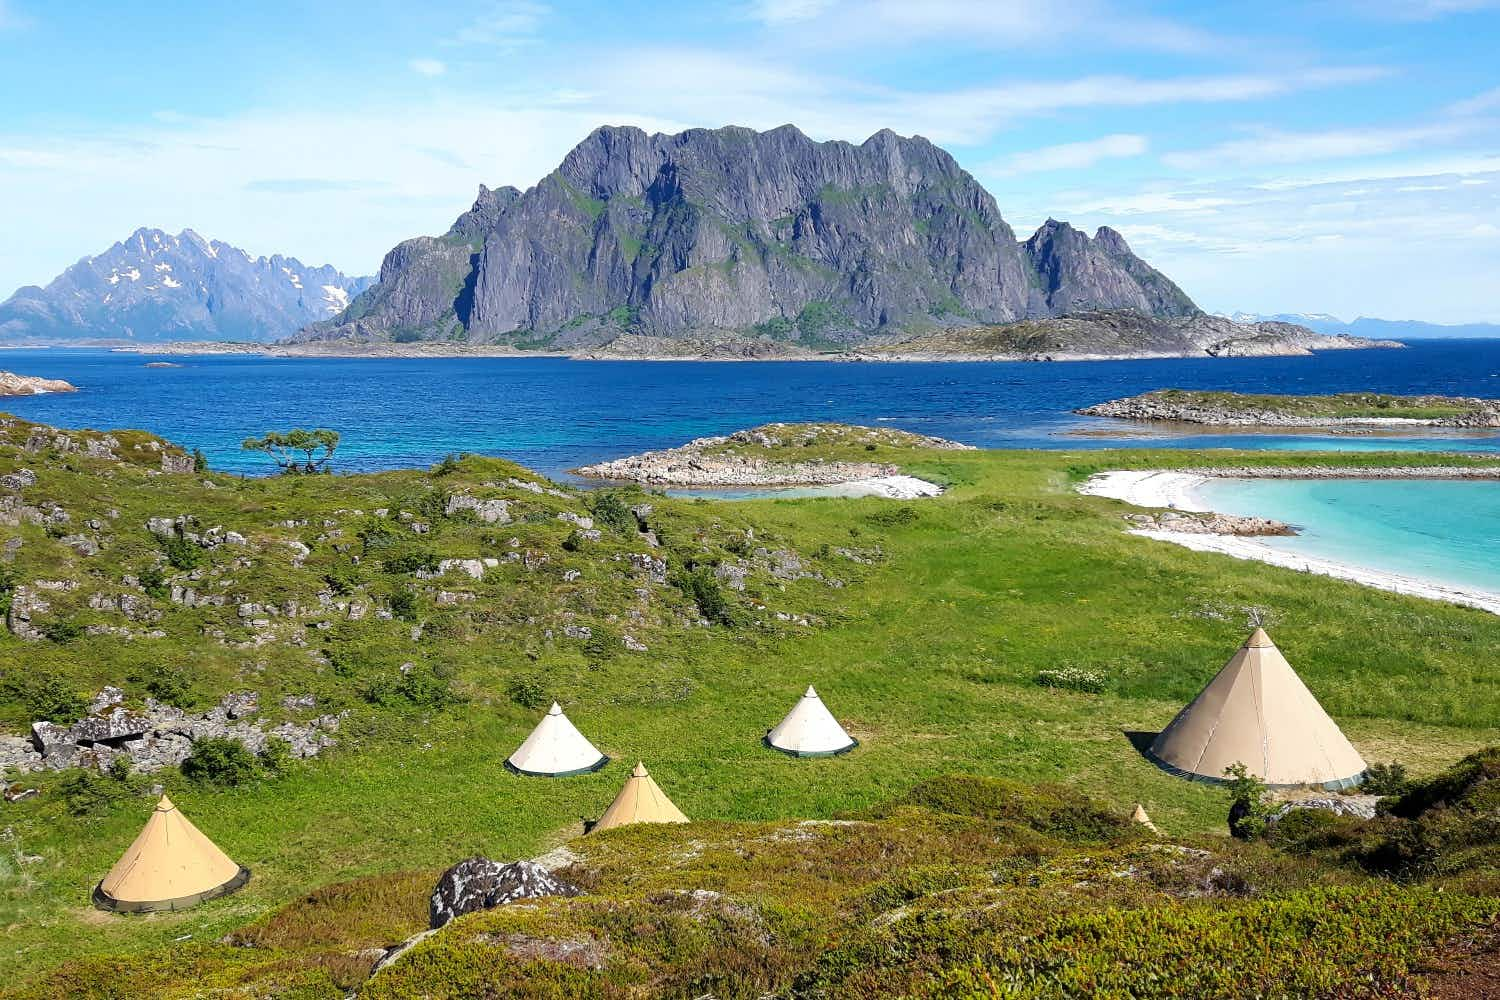 You can glamp in a teepee on the Lofoten Islands in northern Norway